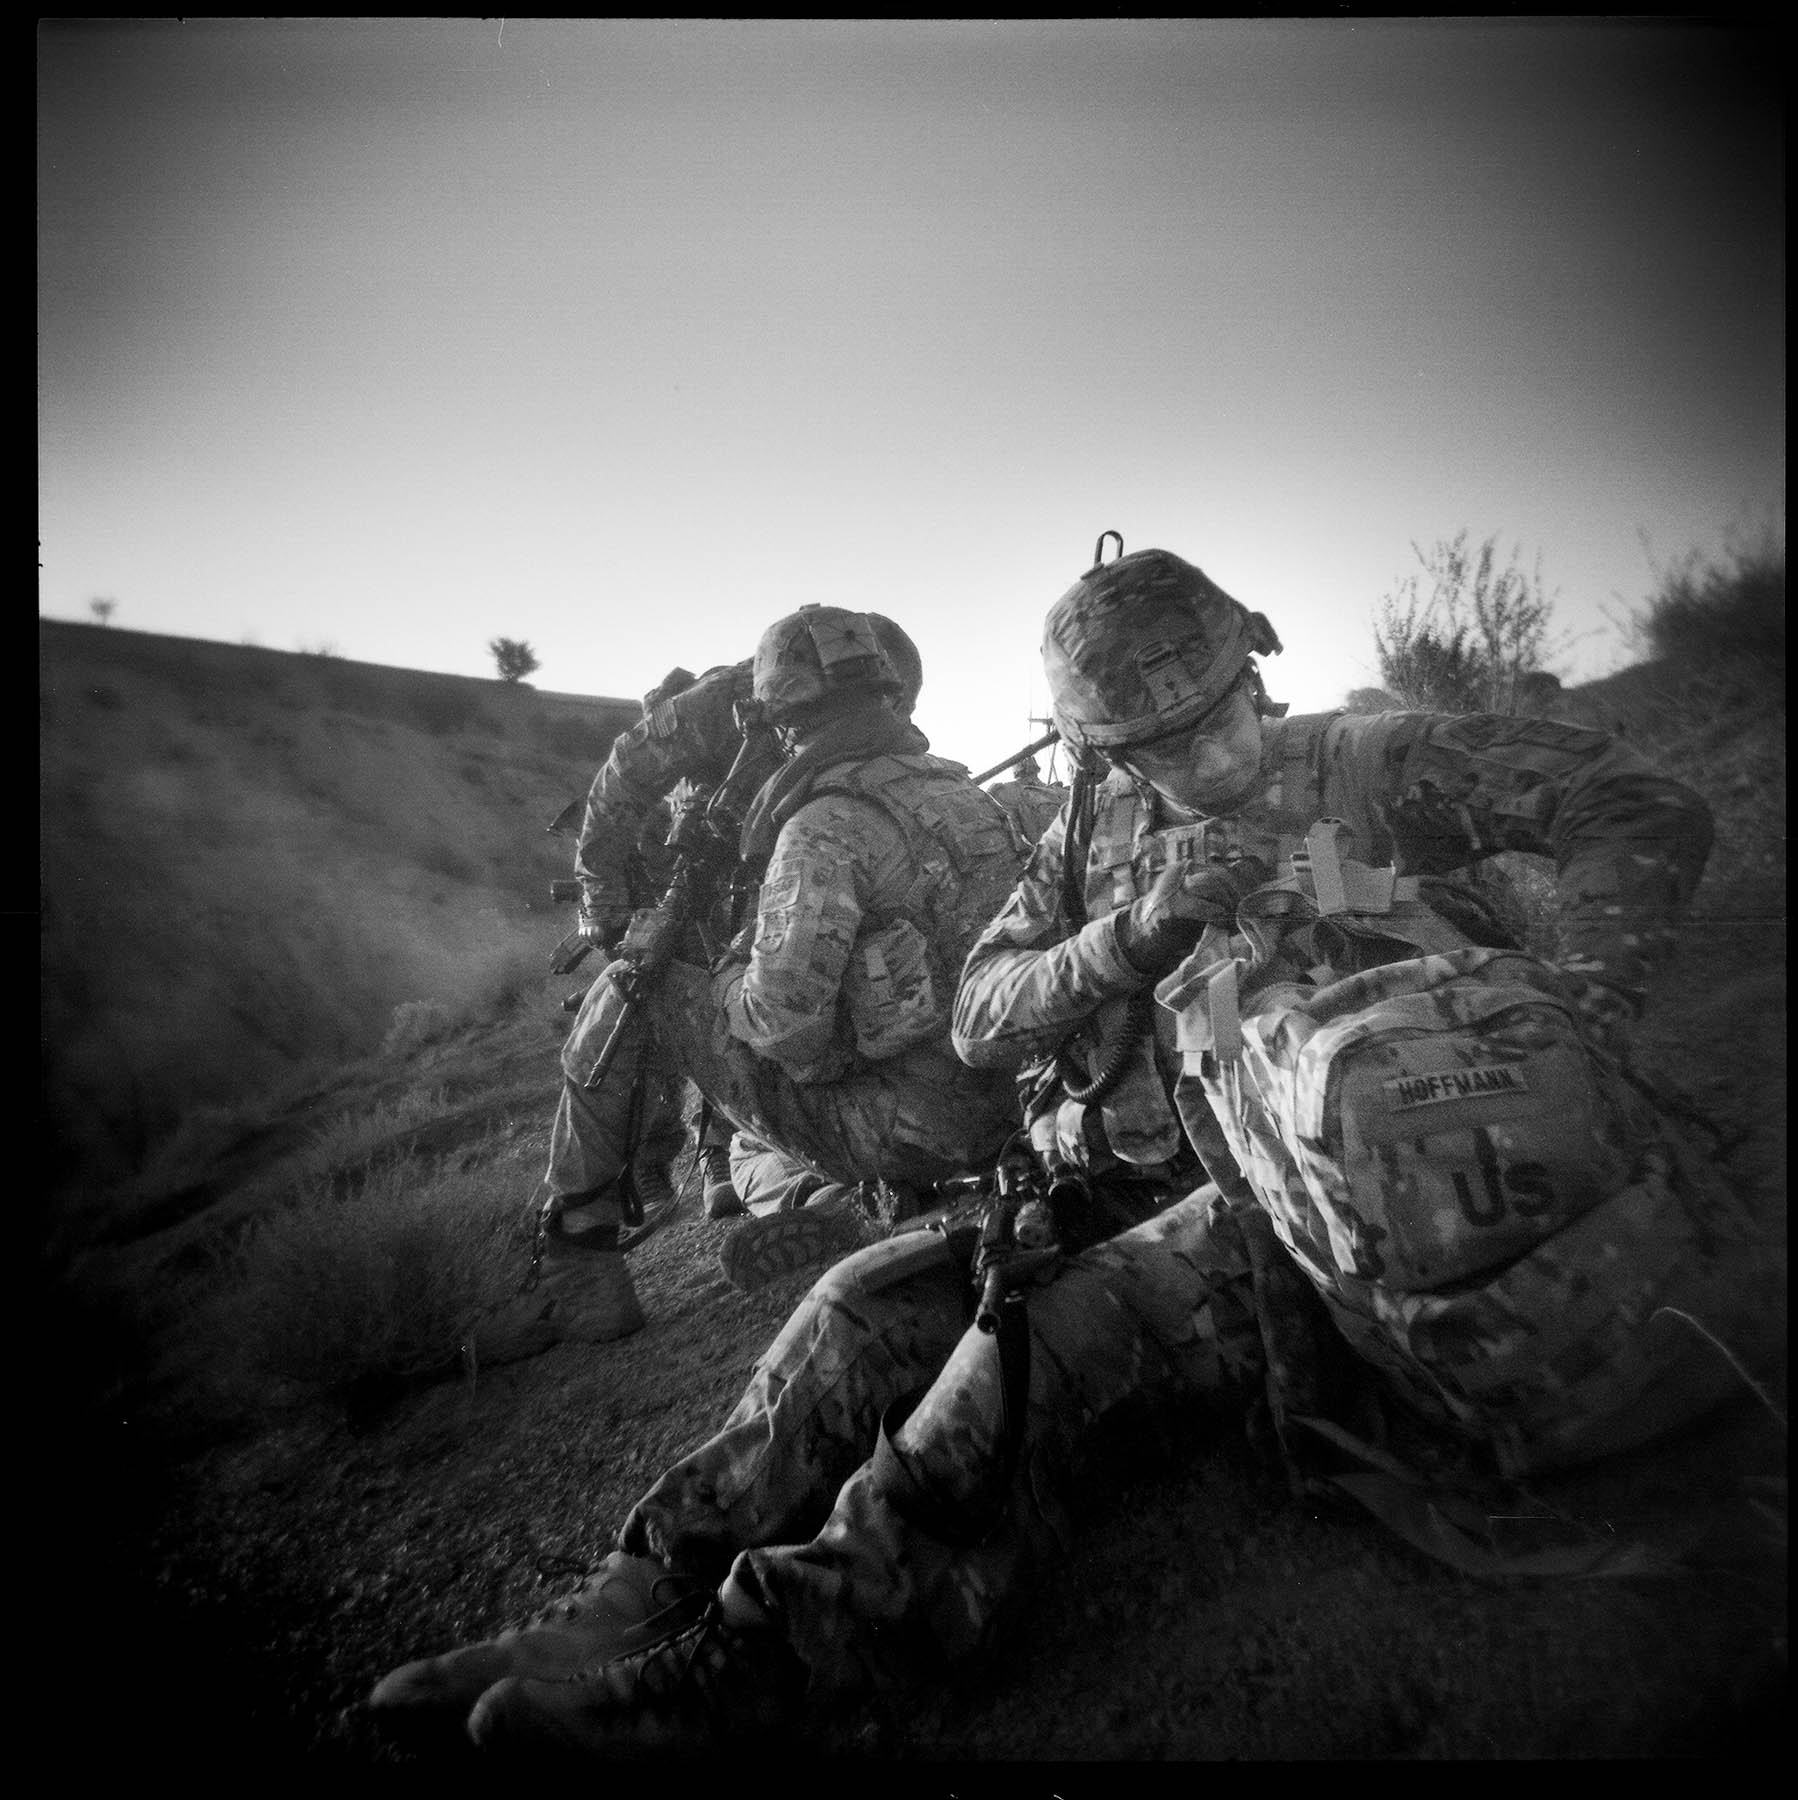 Soldiers pause while on patrol in Gayan district, Paktika province. 2011.